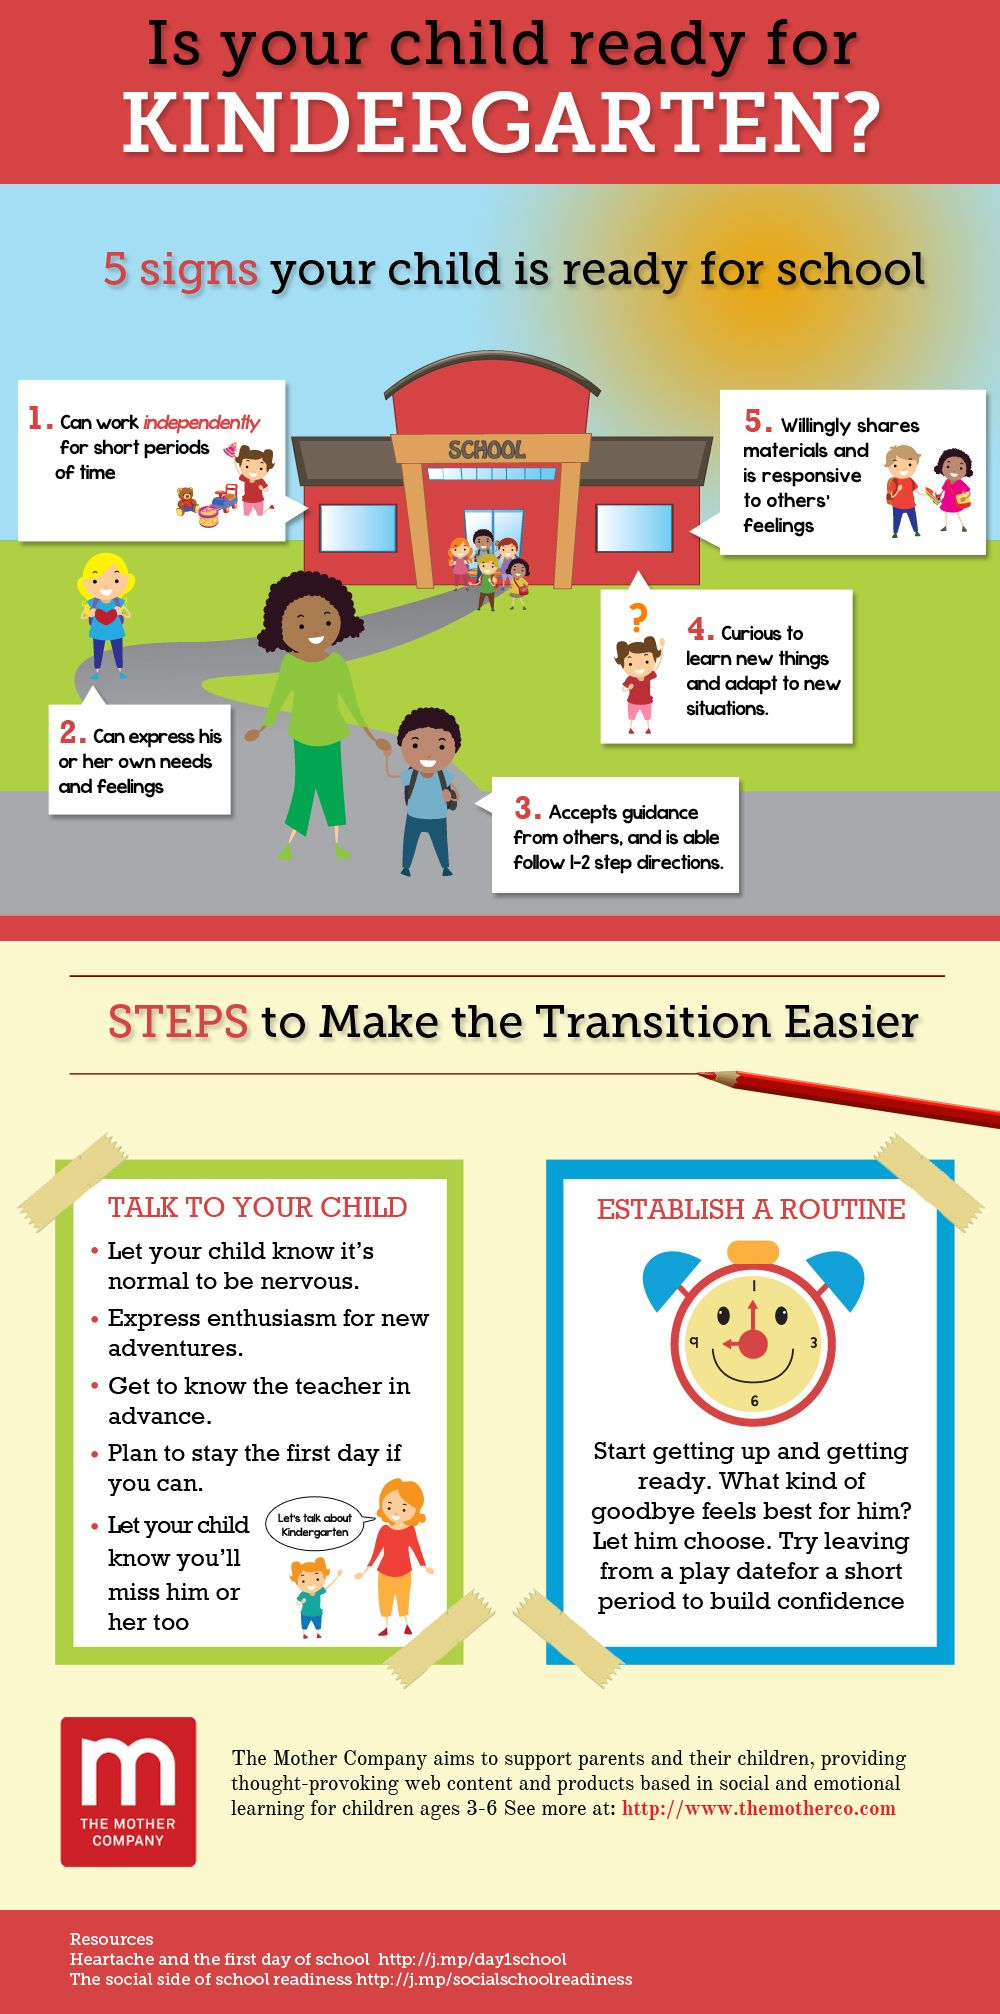 Is your child ready for kindergarten infographic